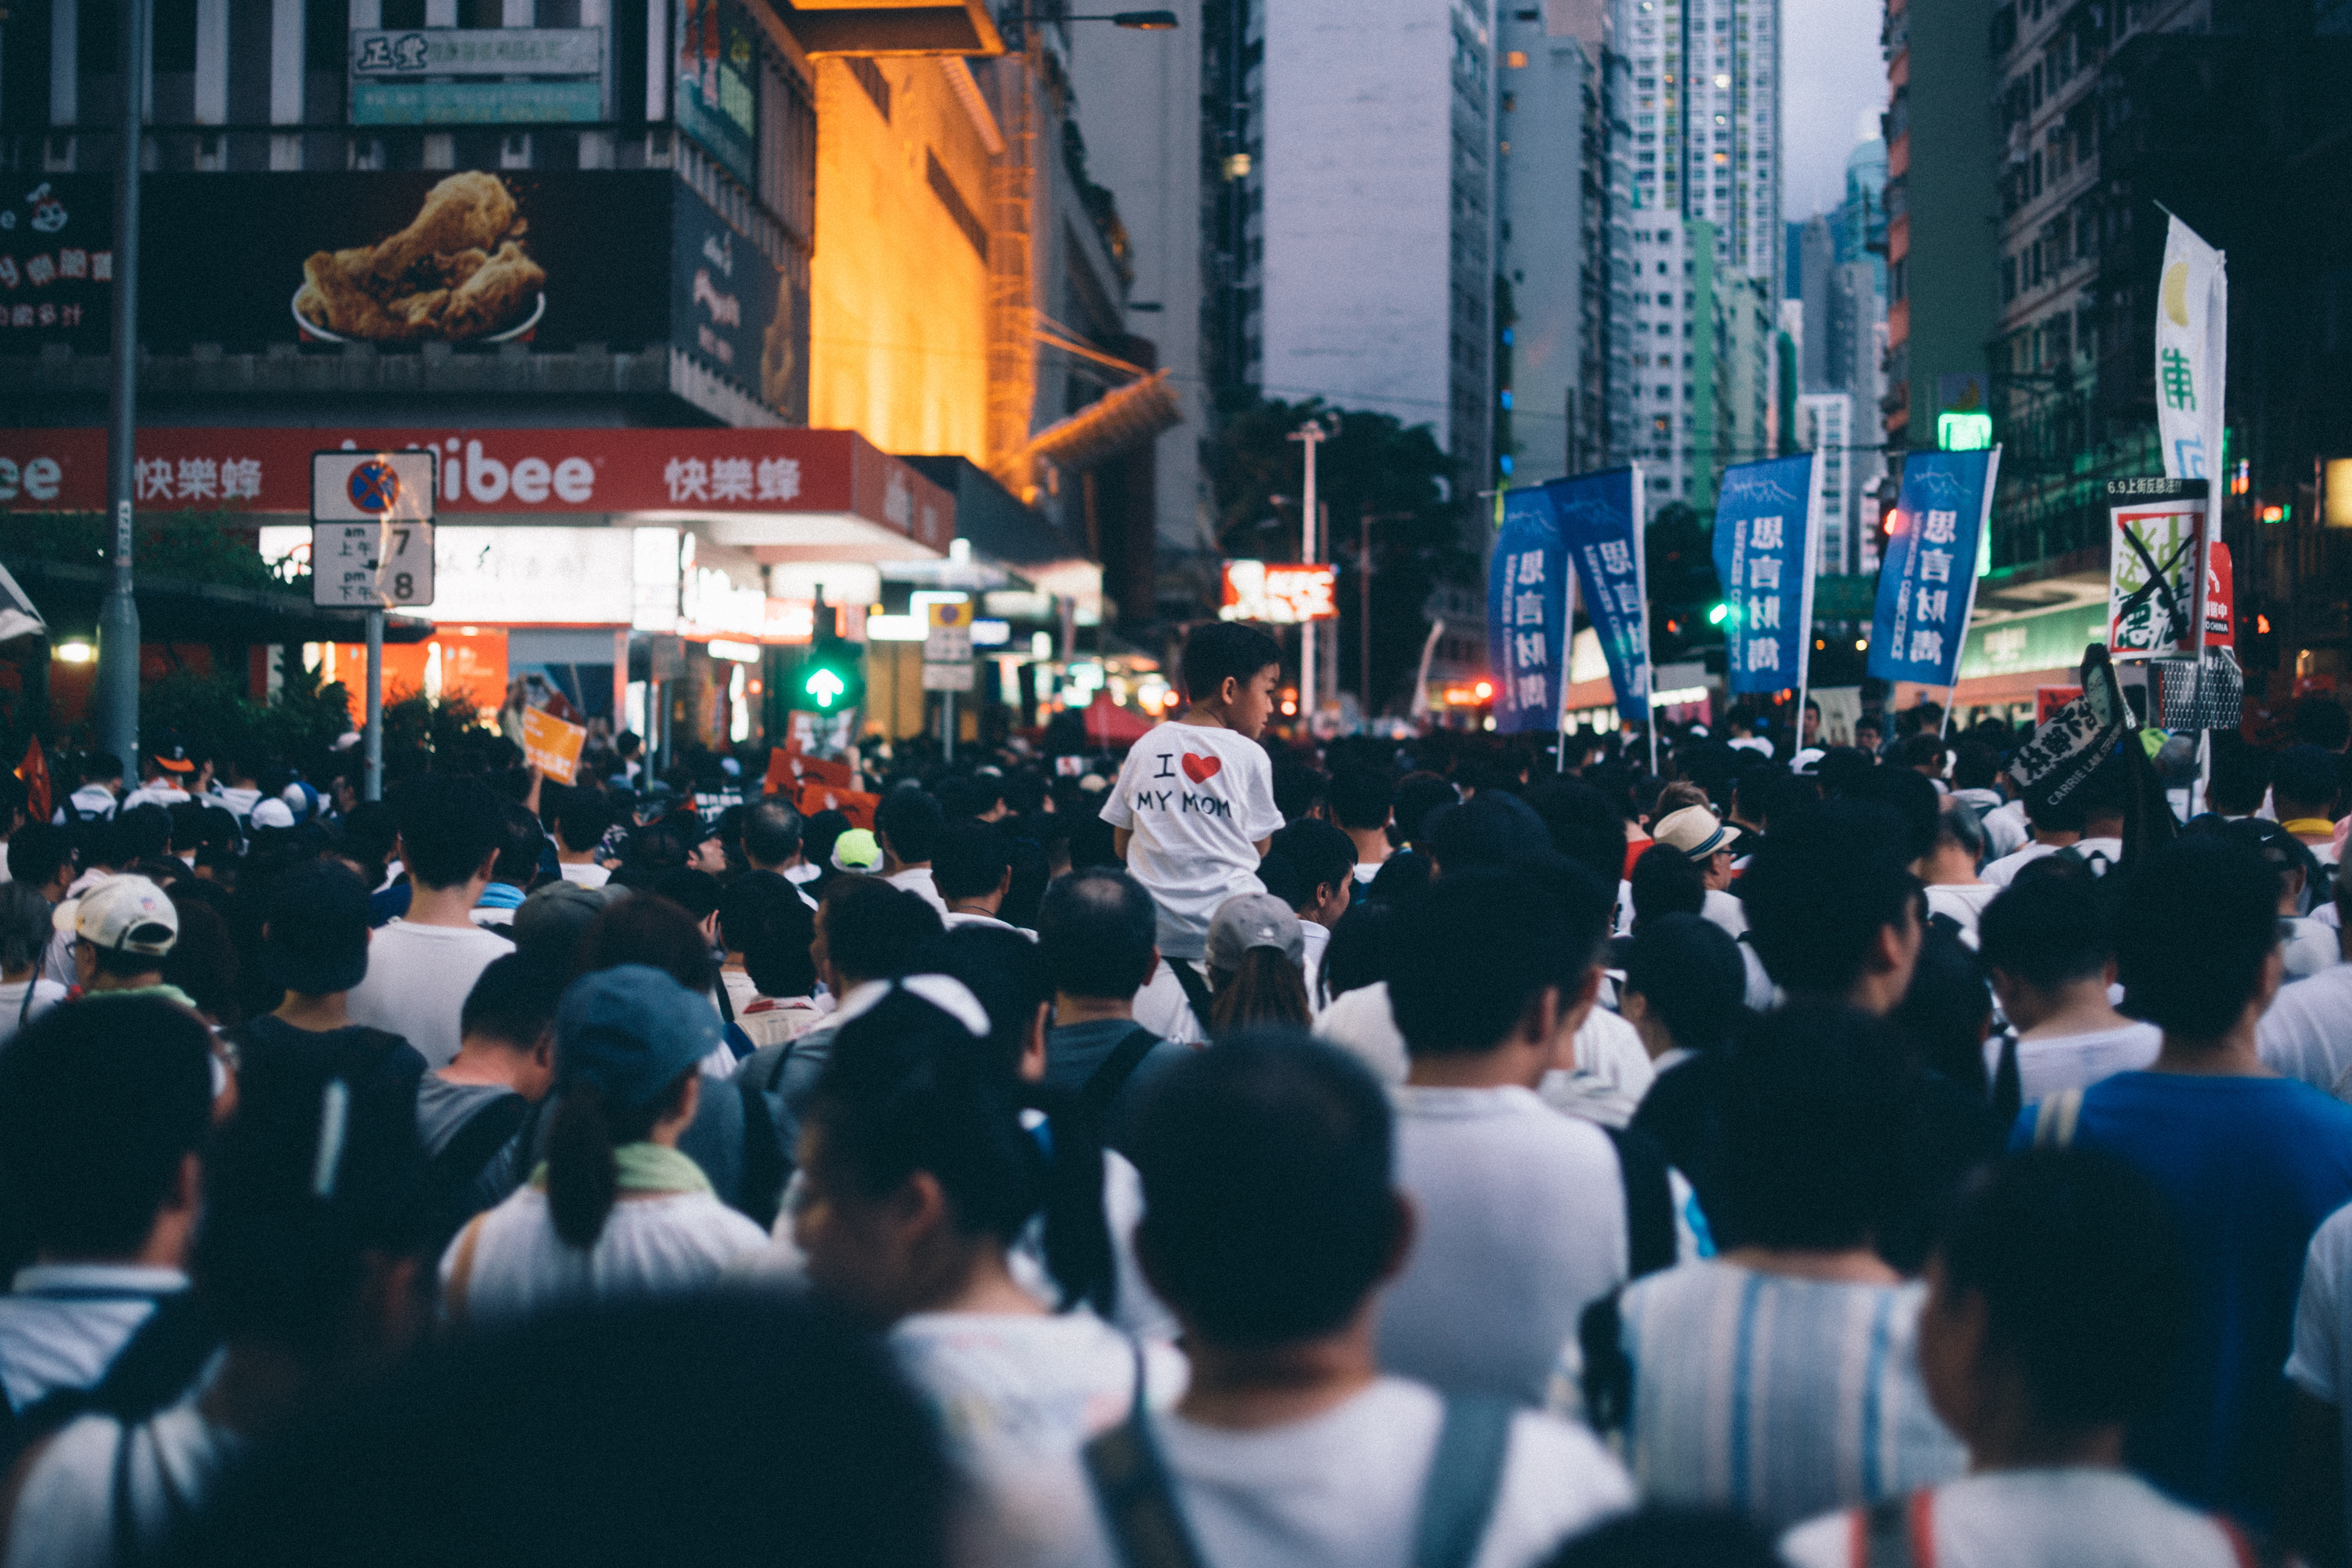 The Hong Kong Protests Are About More Than Just Democracy—They're About Identity